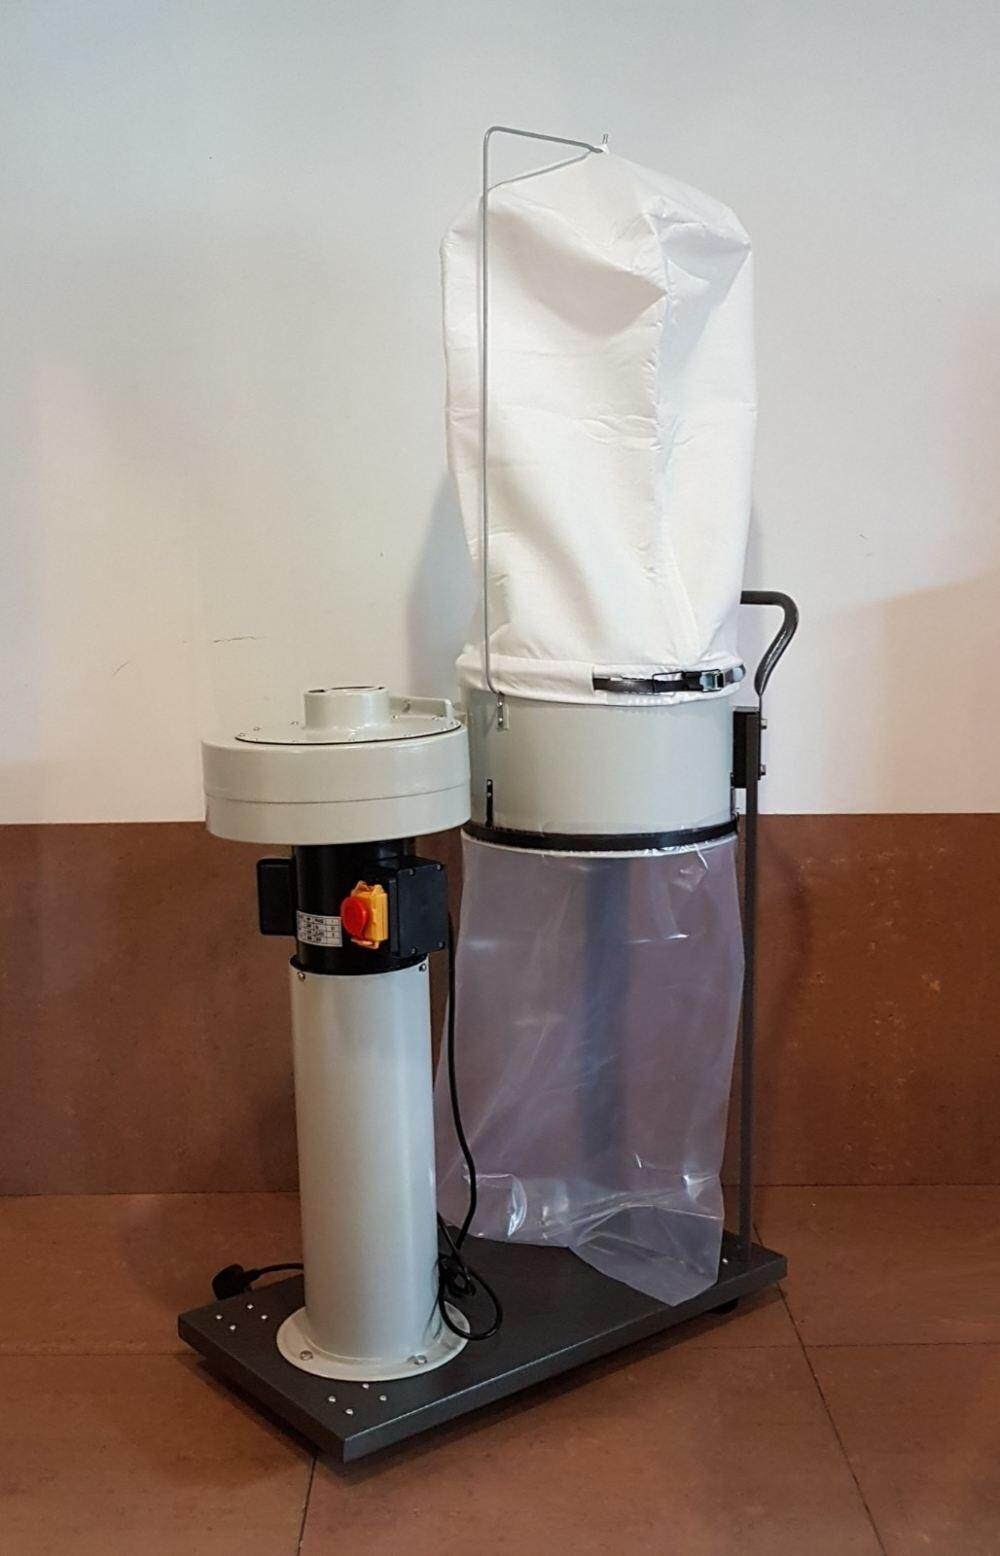 1 hp motor fan wind saw dust waste sand vacuum collect collector with bag